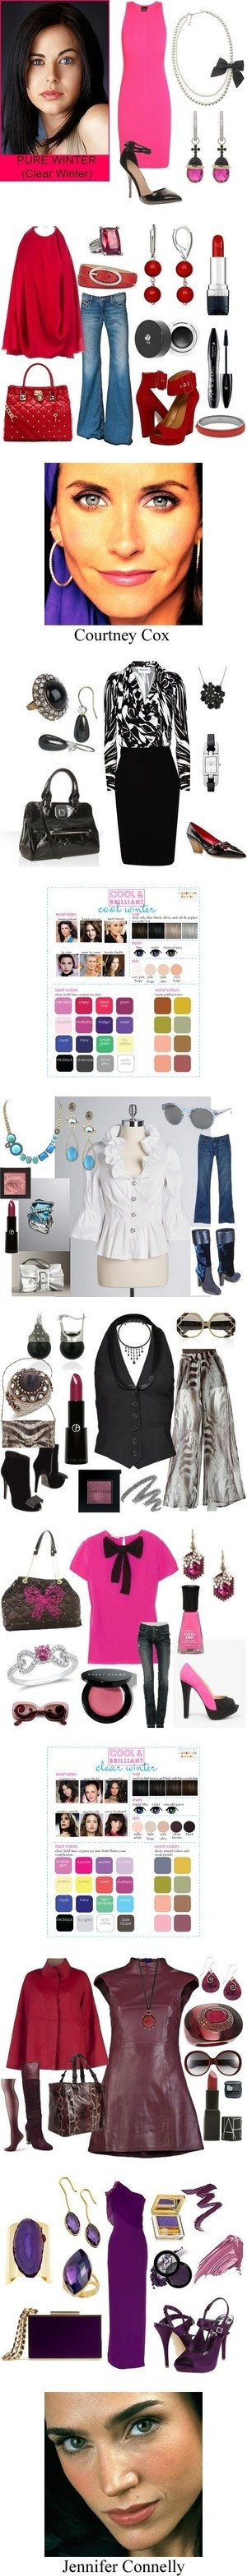 406 best type 4 winter images on pinterest clothes fashion and